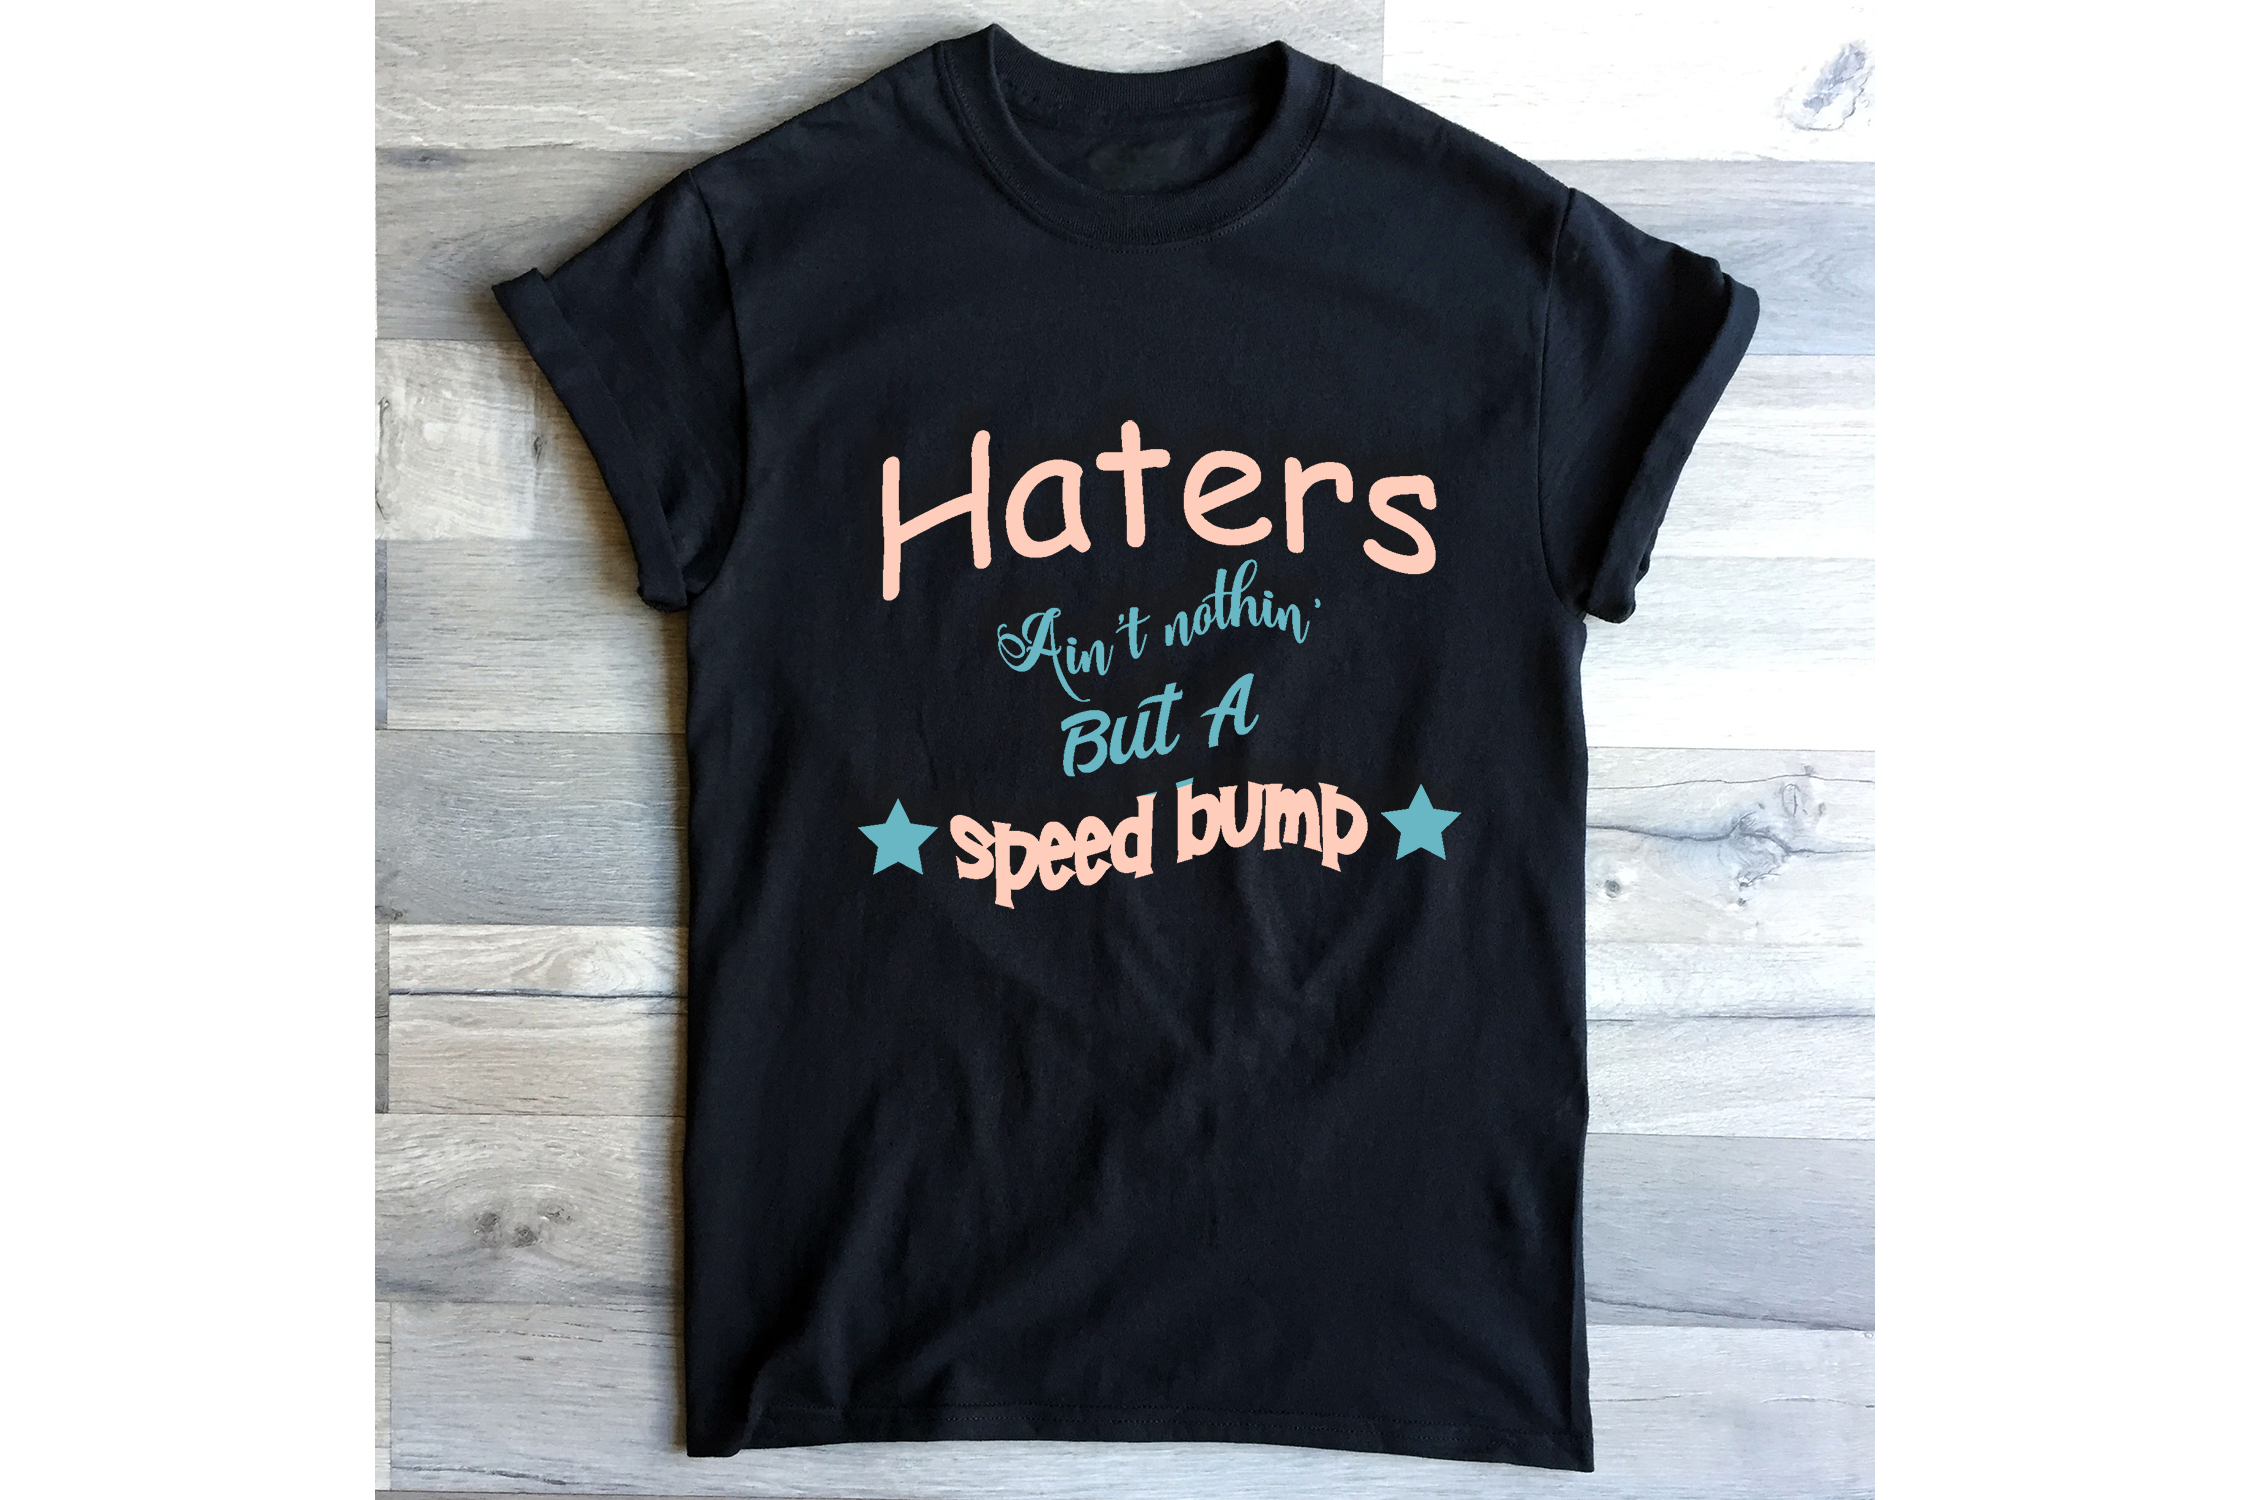 Haters Ain't Nothin' But A Speedbump example image 3